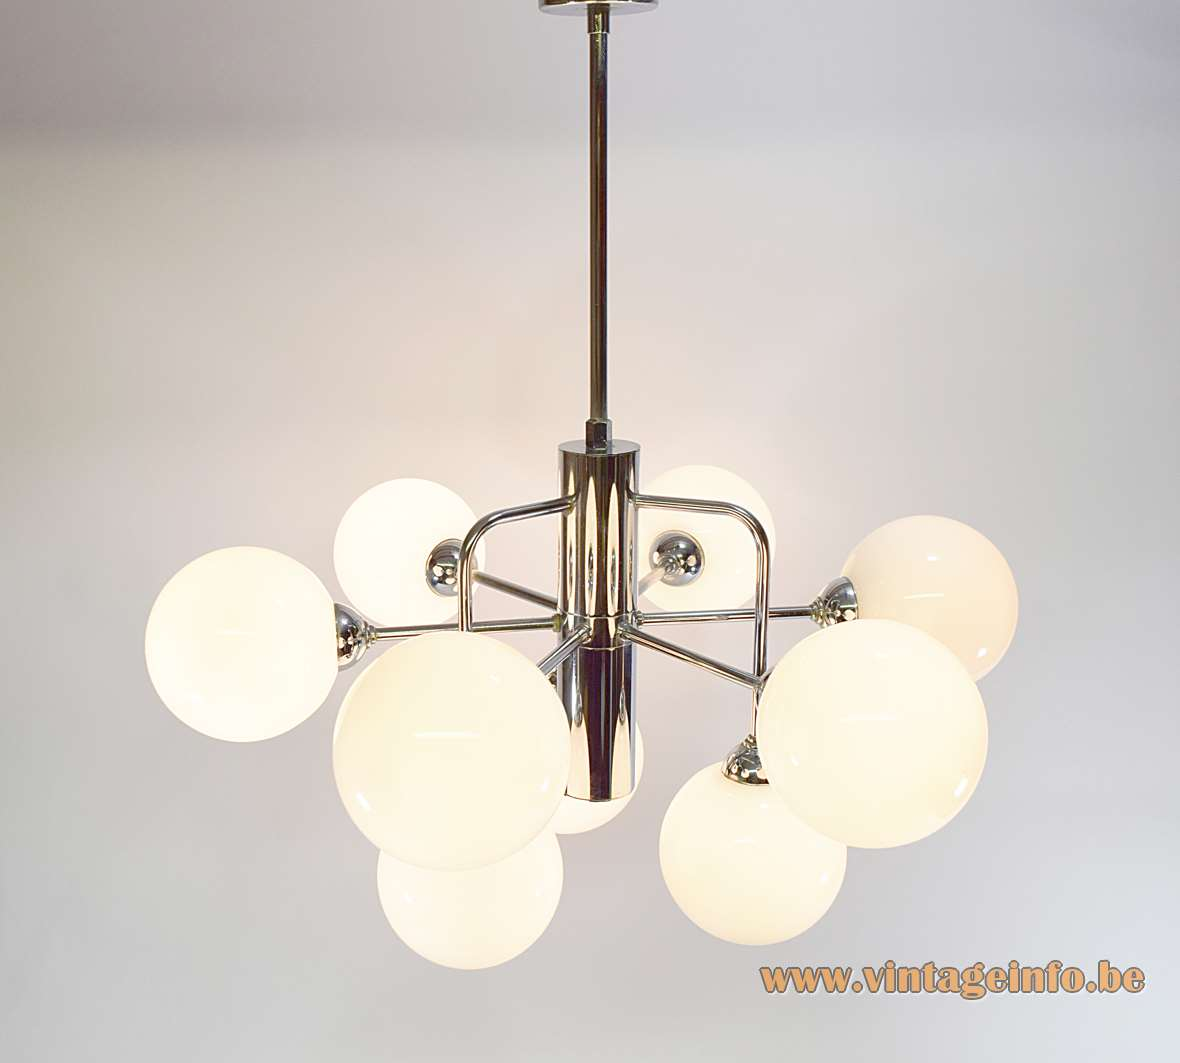 Atomic globes chandelier chrome curved rods 9 opal glass sputnik sphere balls 1960s 1970s Massive Belgium